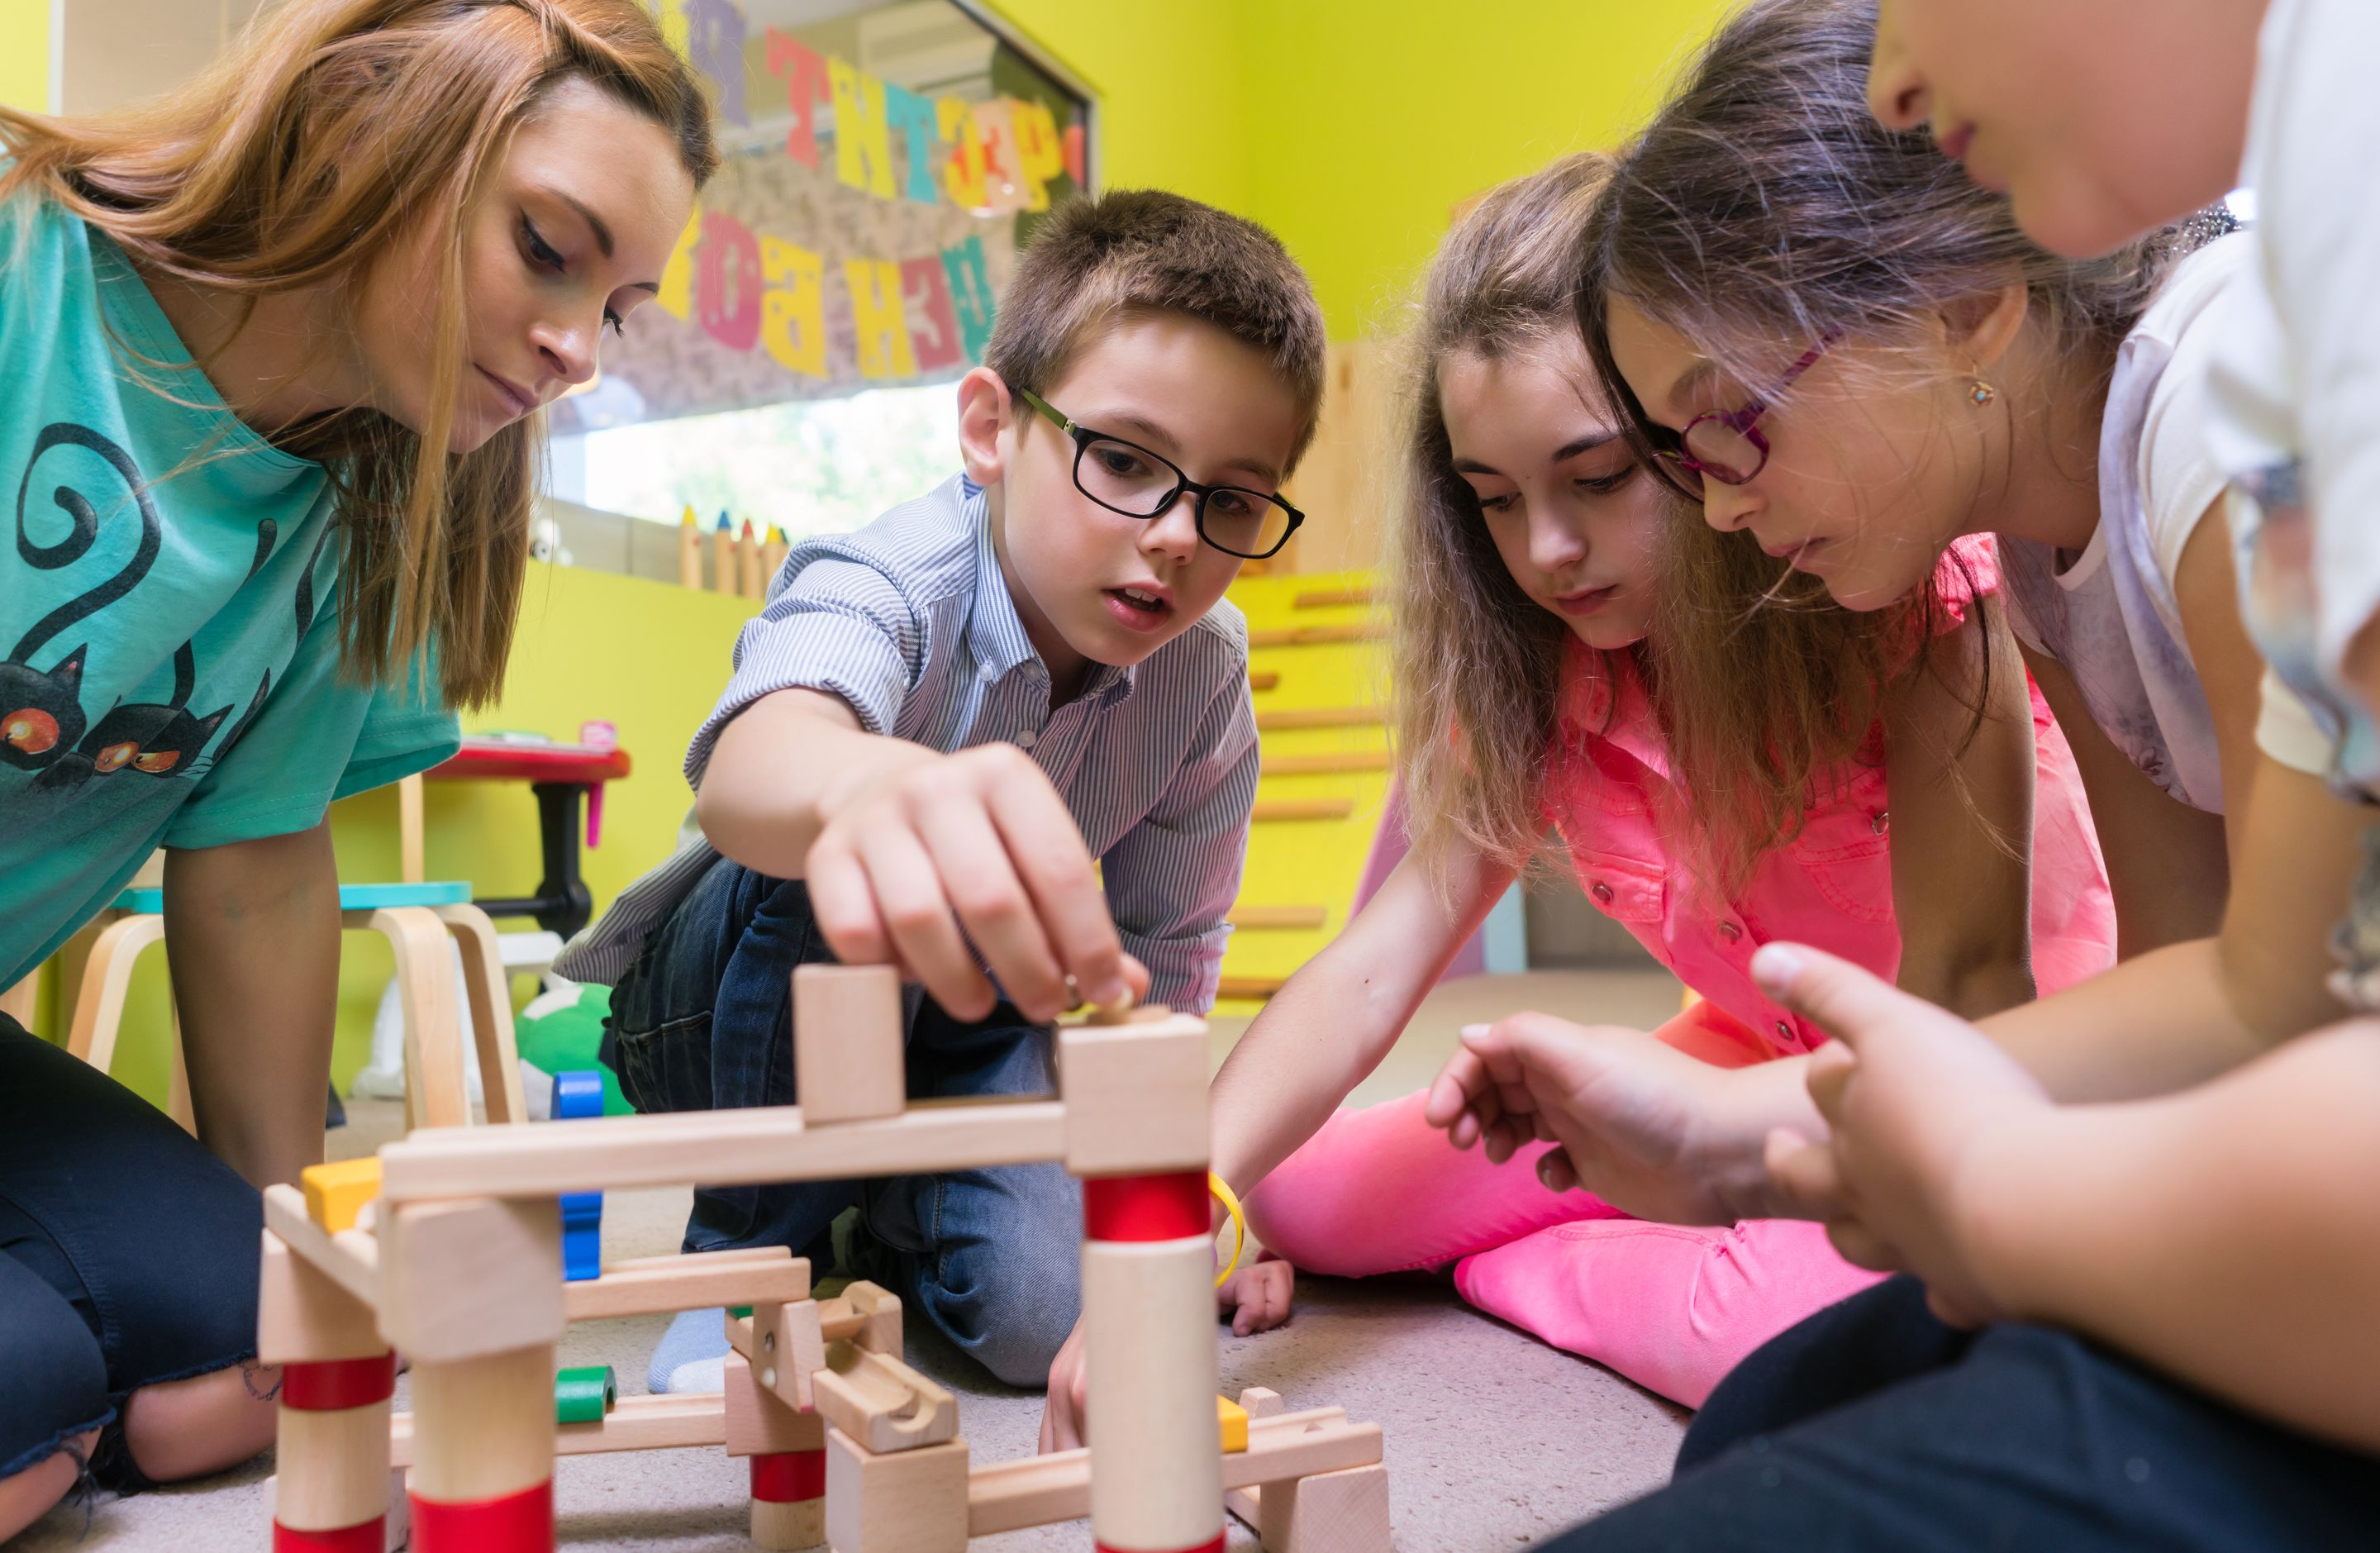 View of a teacher helping children with the construction of a wooden train circuit during supervised free playtime